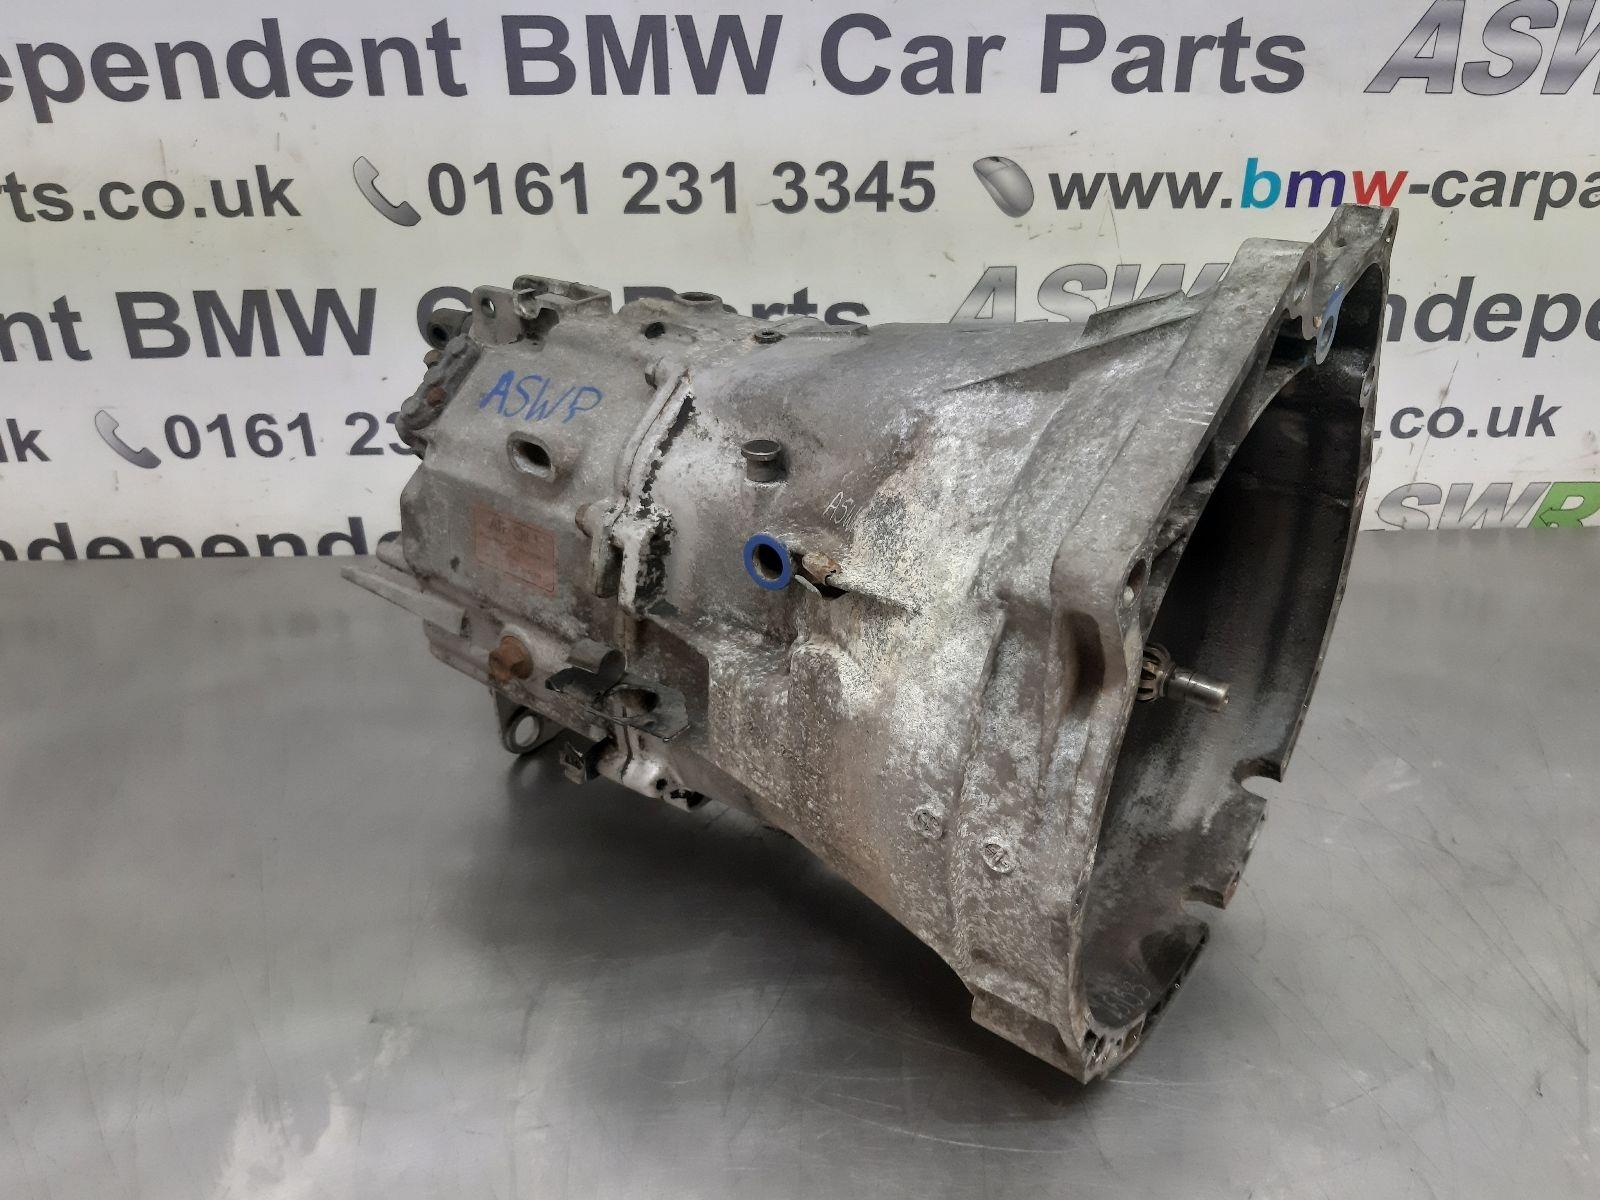 BMW E36 SERIES Manual Gearbox 23007505600 breaking for used and